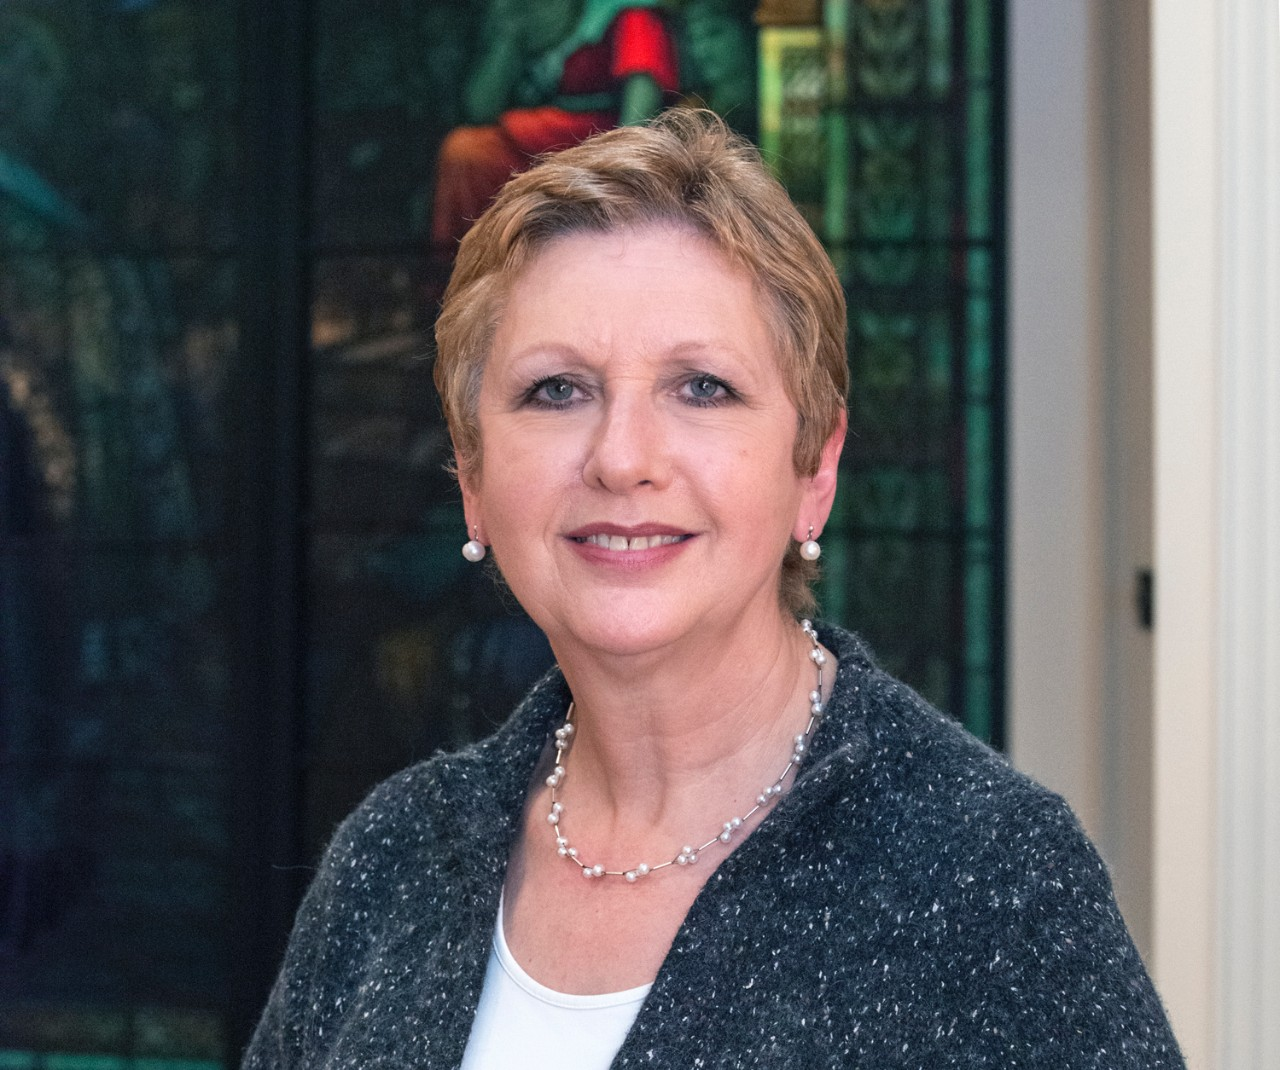 Mary McAleese, former president of Ireland, served as Burns Scholar in 2013.